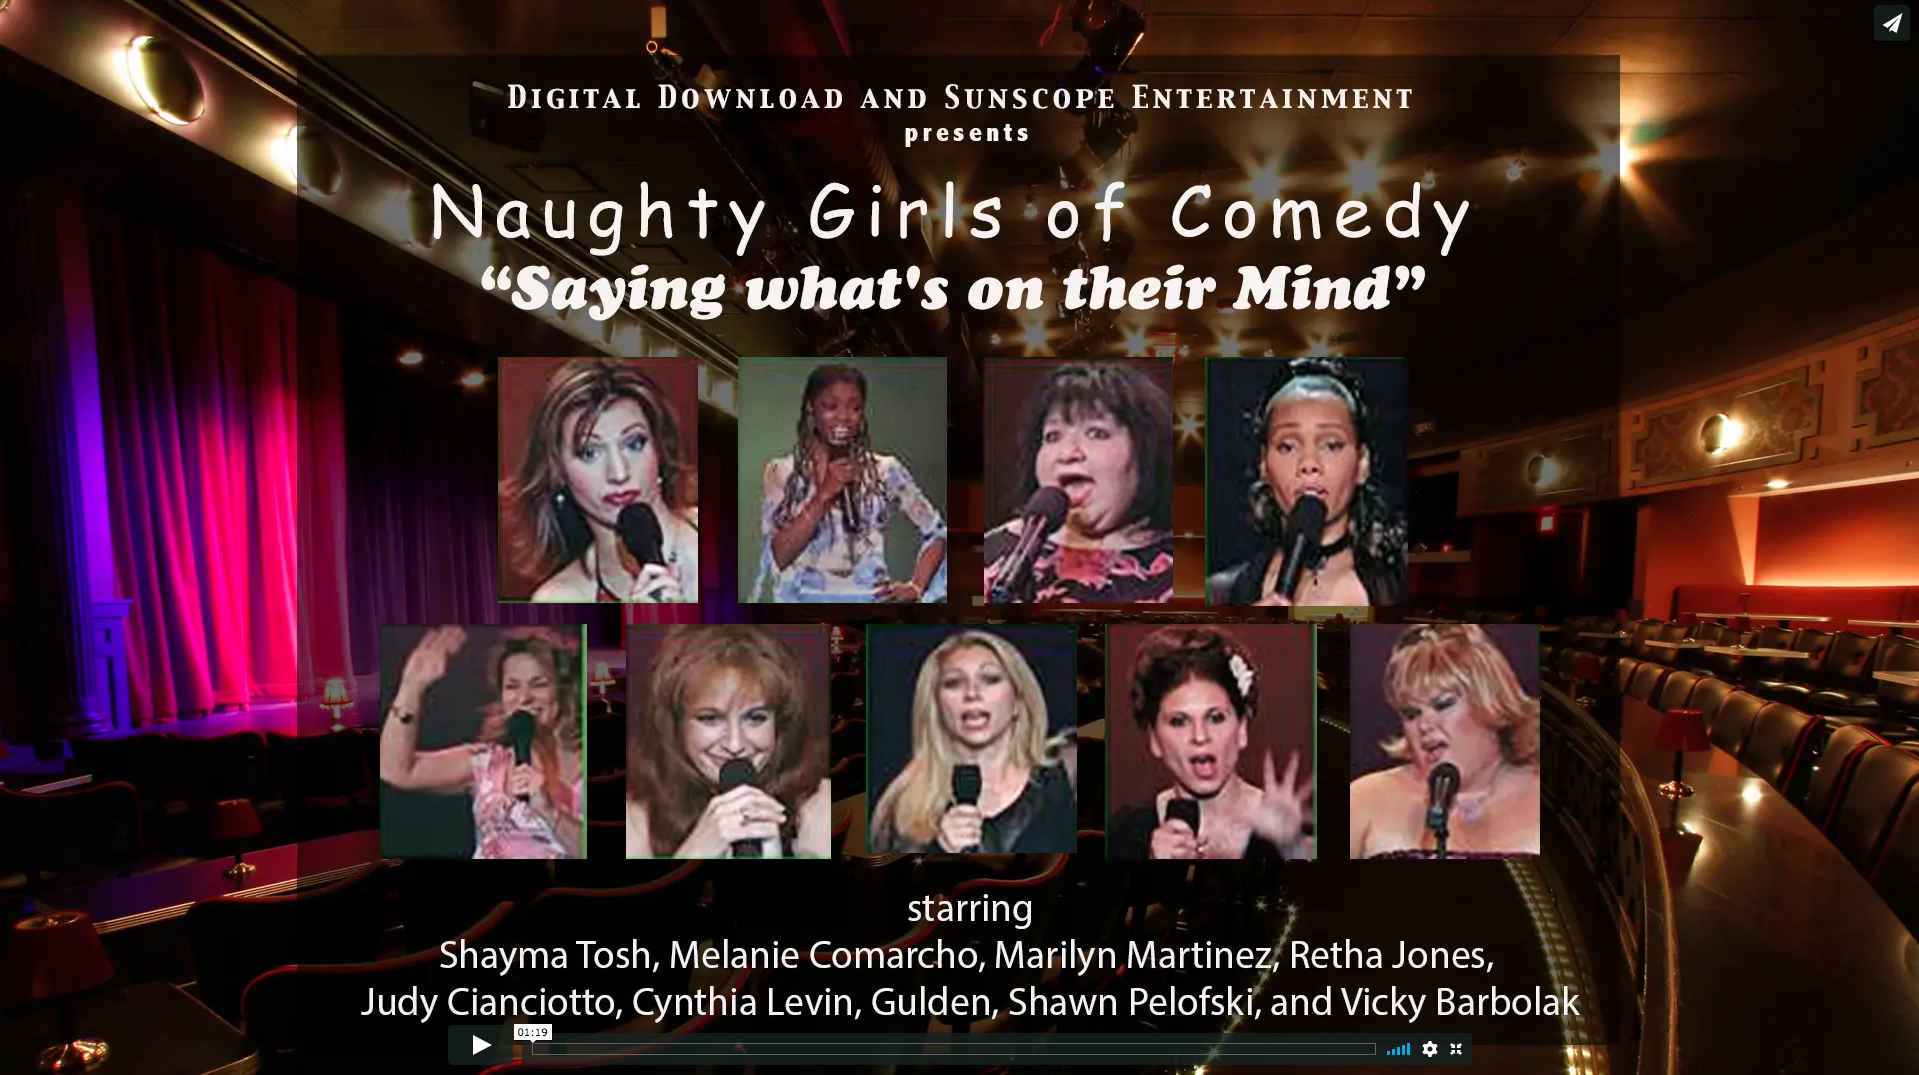 Naughty Girls of Comedy